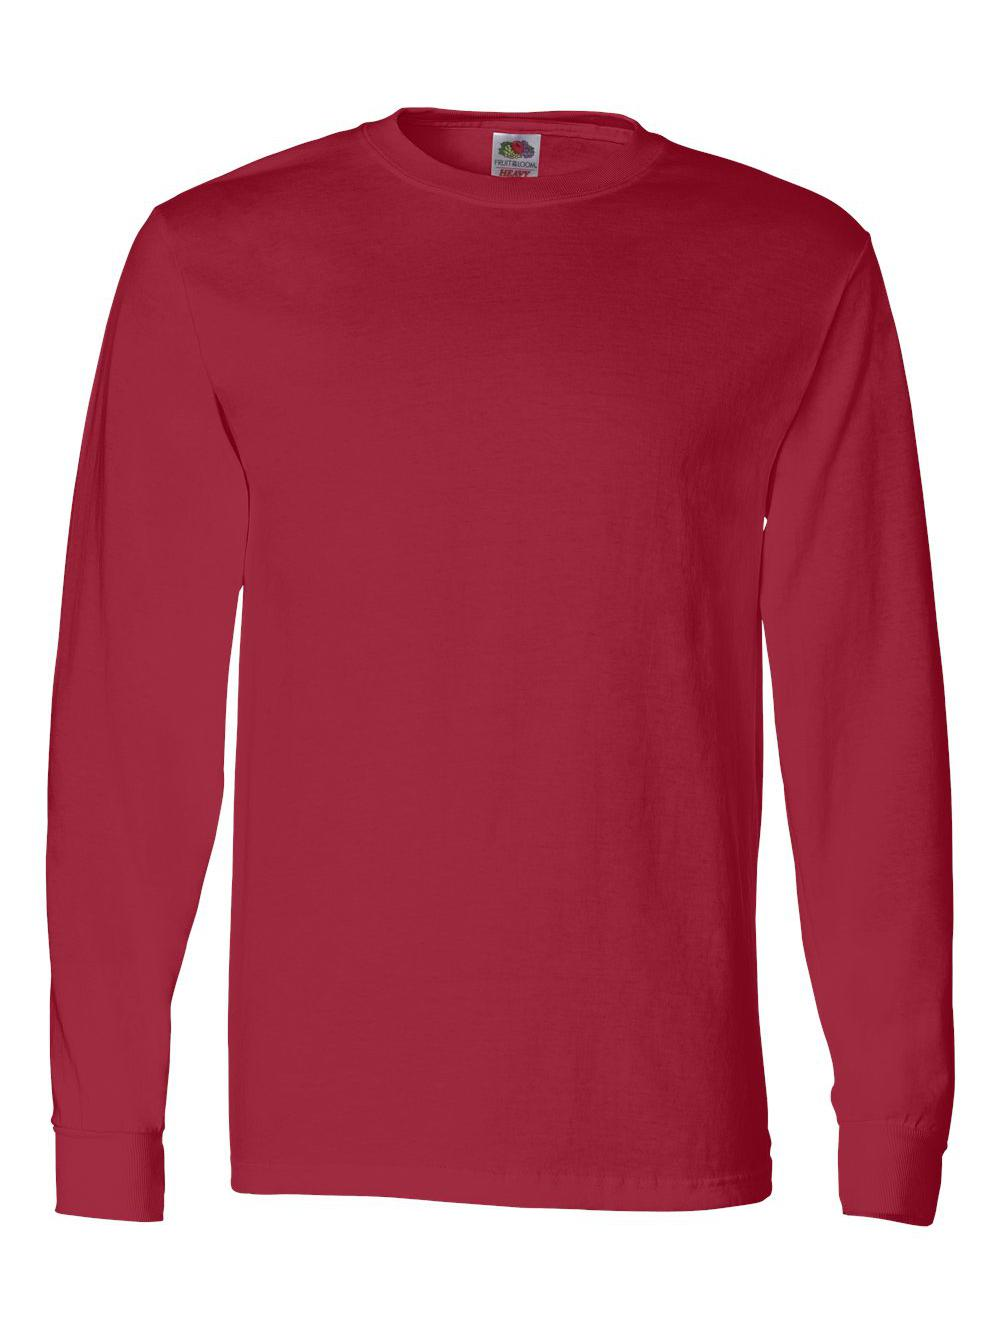 Fruit-of-the-Loom-HD-Cotton-Long-Sleeve-T-Shirt-4930R thumbnail 75